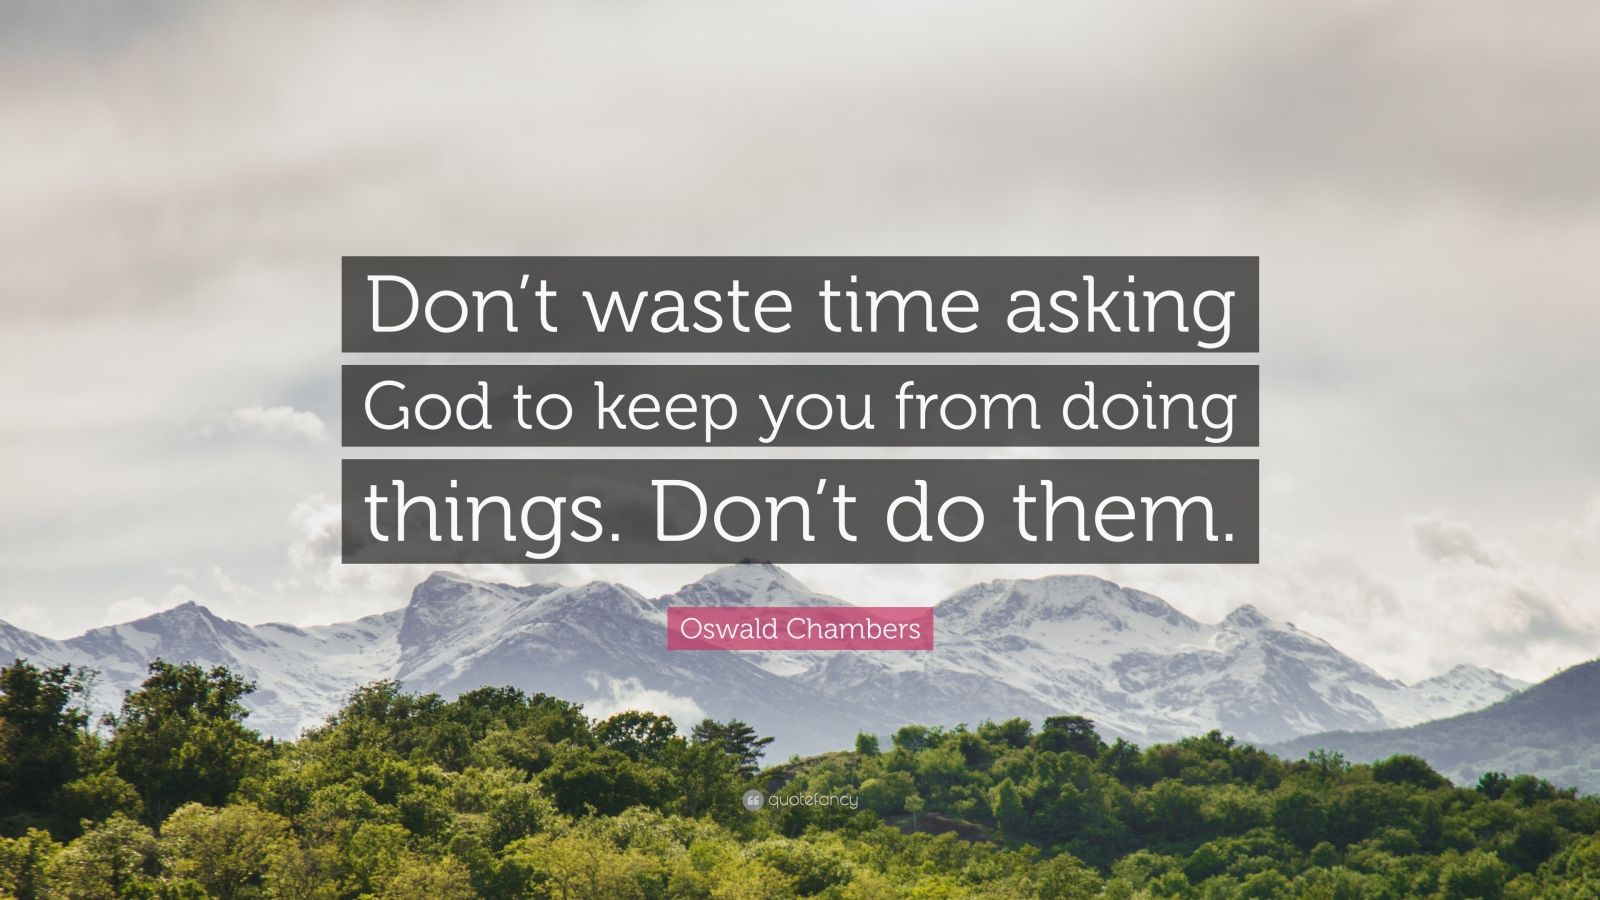 """Oswald Chambers Quote: """"Don't waste time asking God to keep you from doing things. Don't do them."""""""